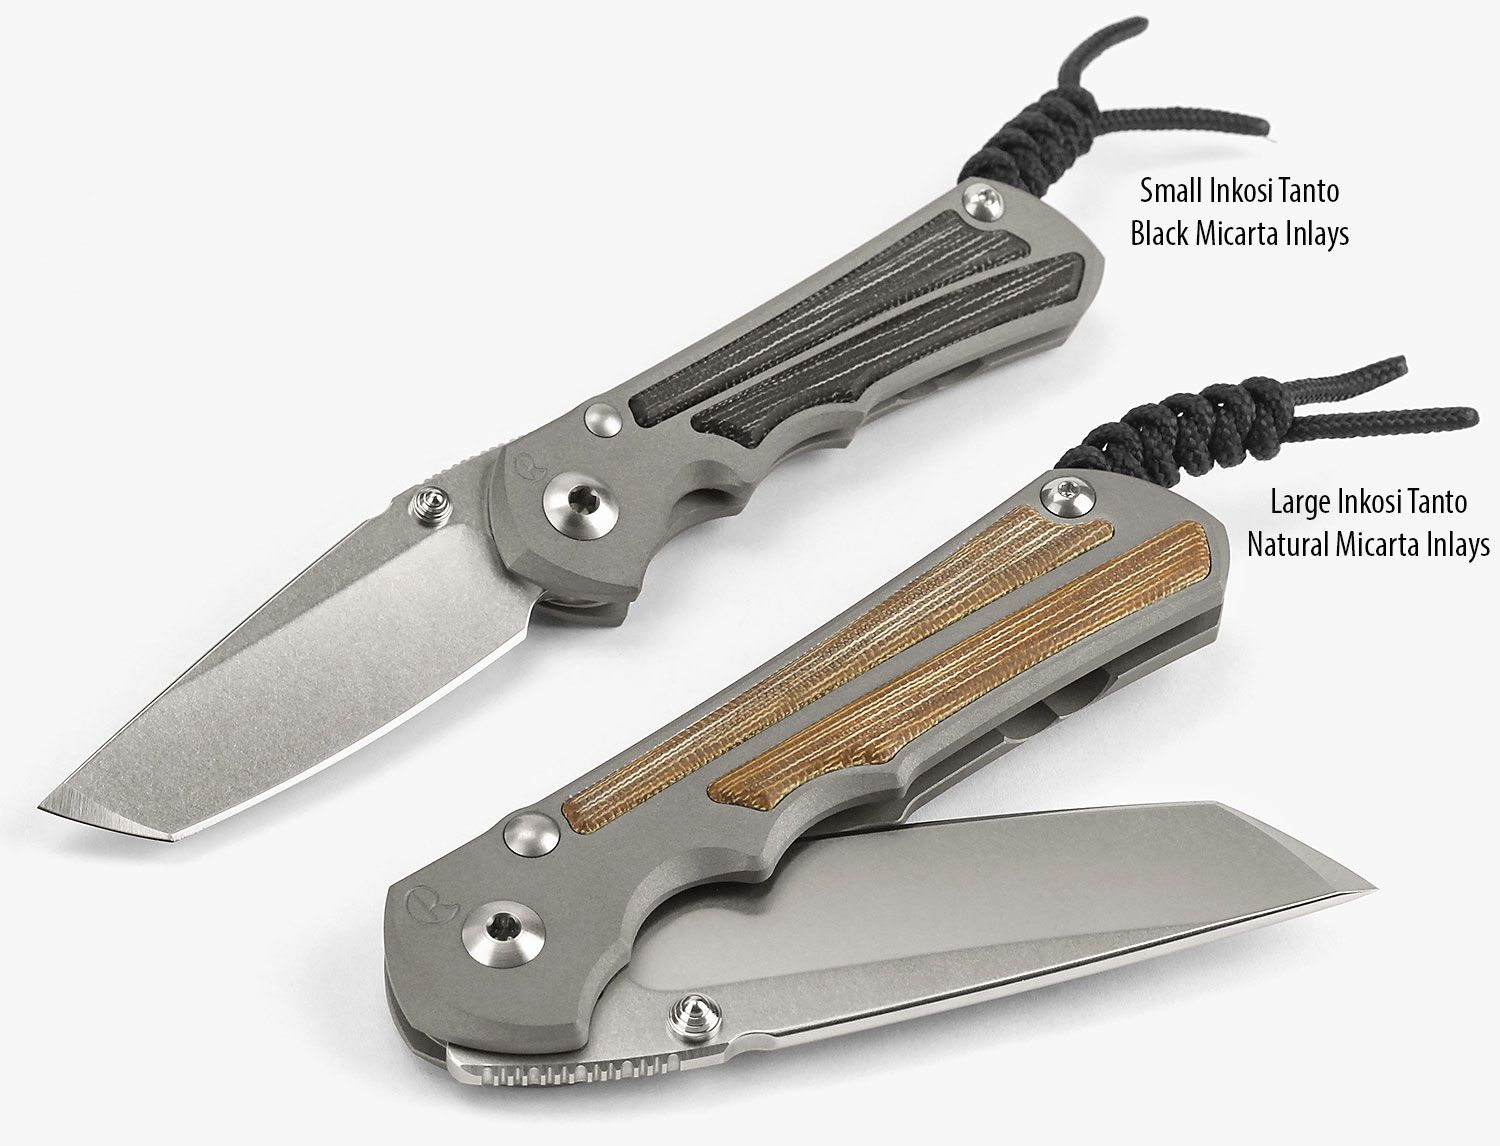 Chris Reeve Left Handed Small Inkosi Tanto Folding Knife 2.8 inch S35VN Stonewashed Blade, Titanium Handles with Natural Canvas Micarta Inlays